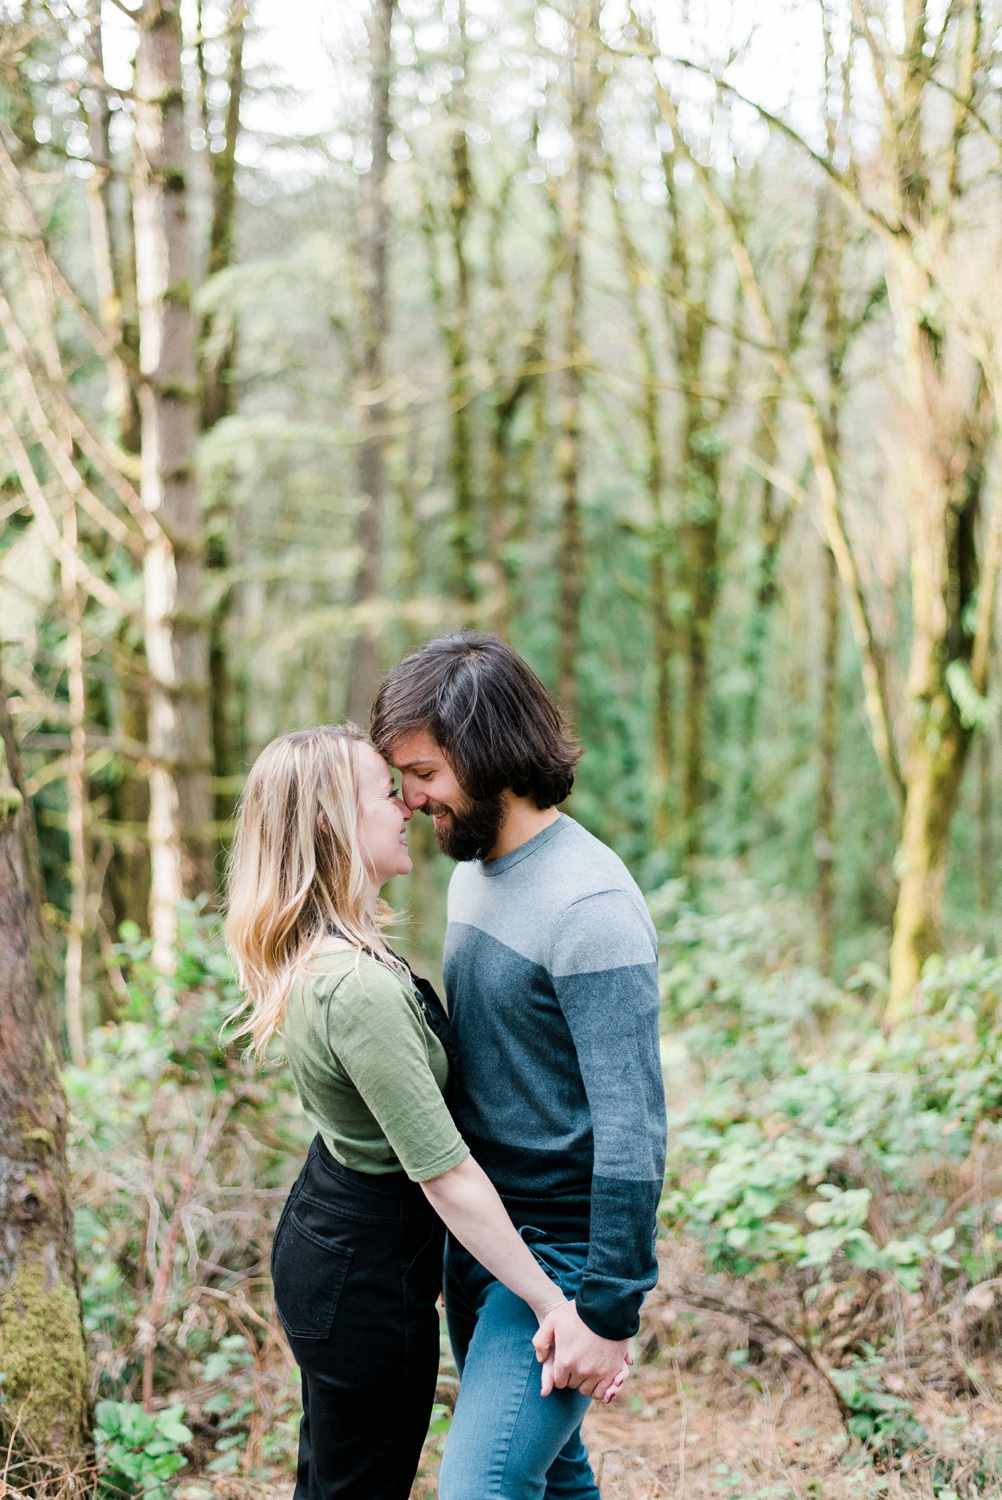 washington-park-portland-engagement-photos-hoyt-arboretum-shelley-marie-photo-078_cr.jpg